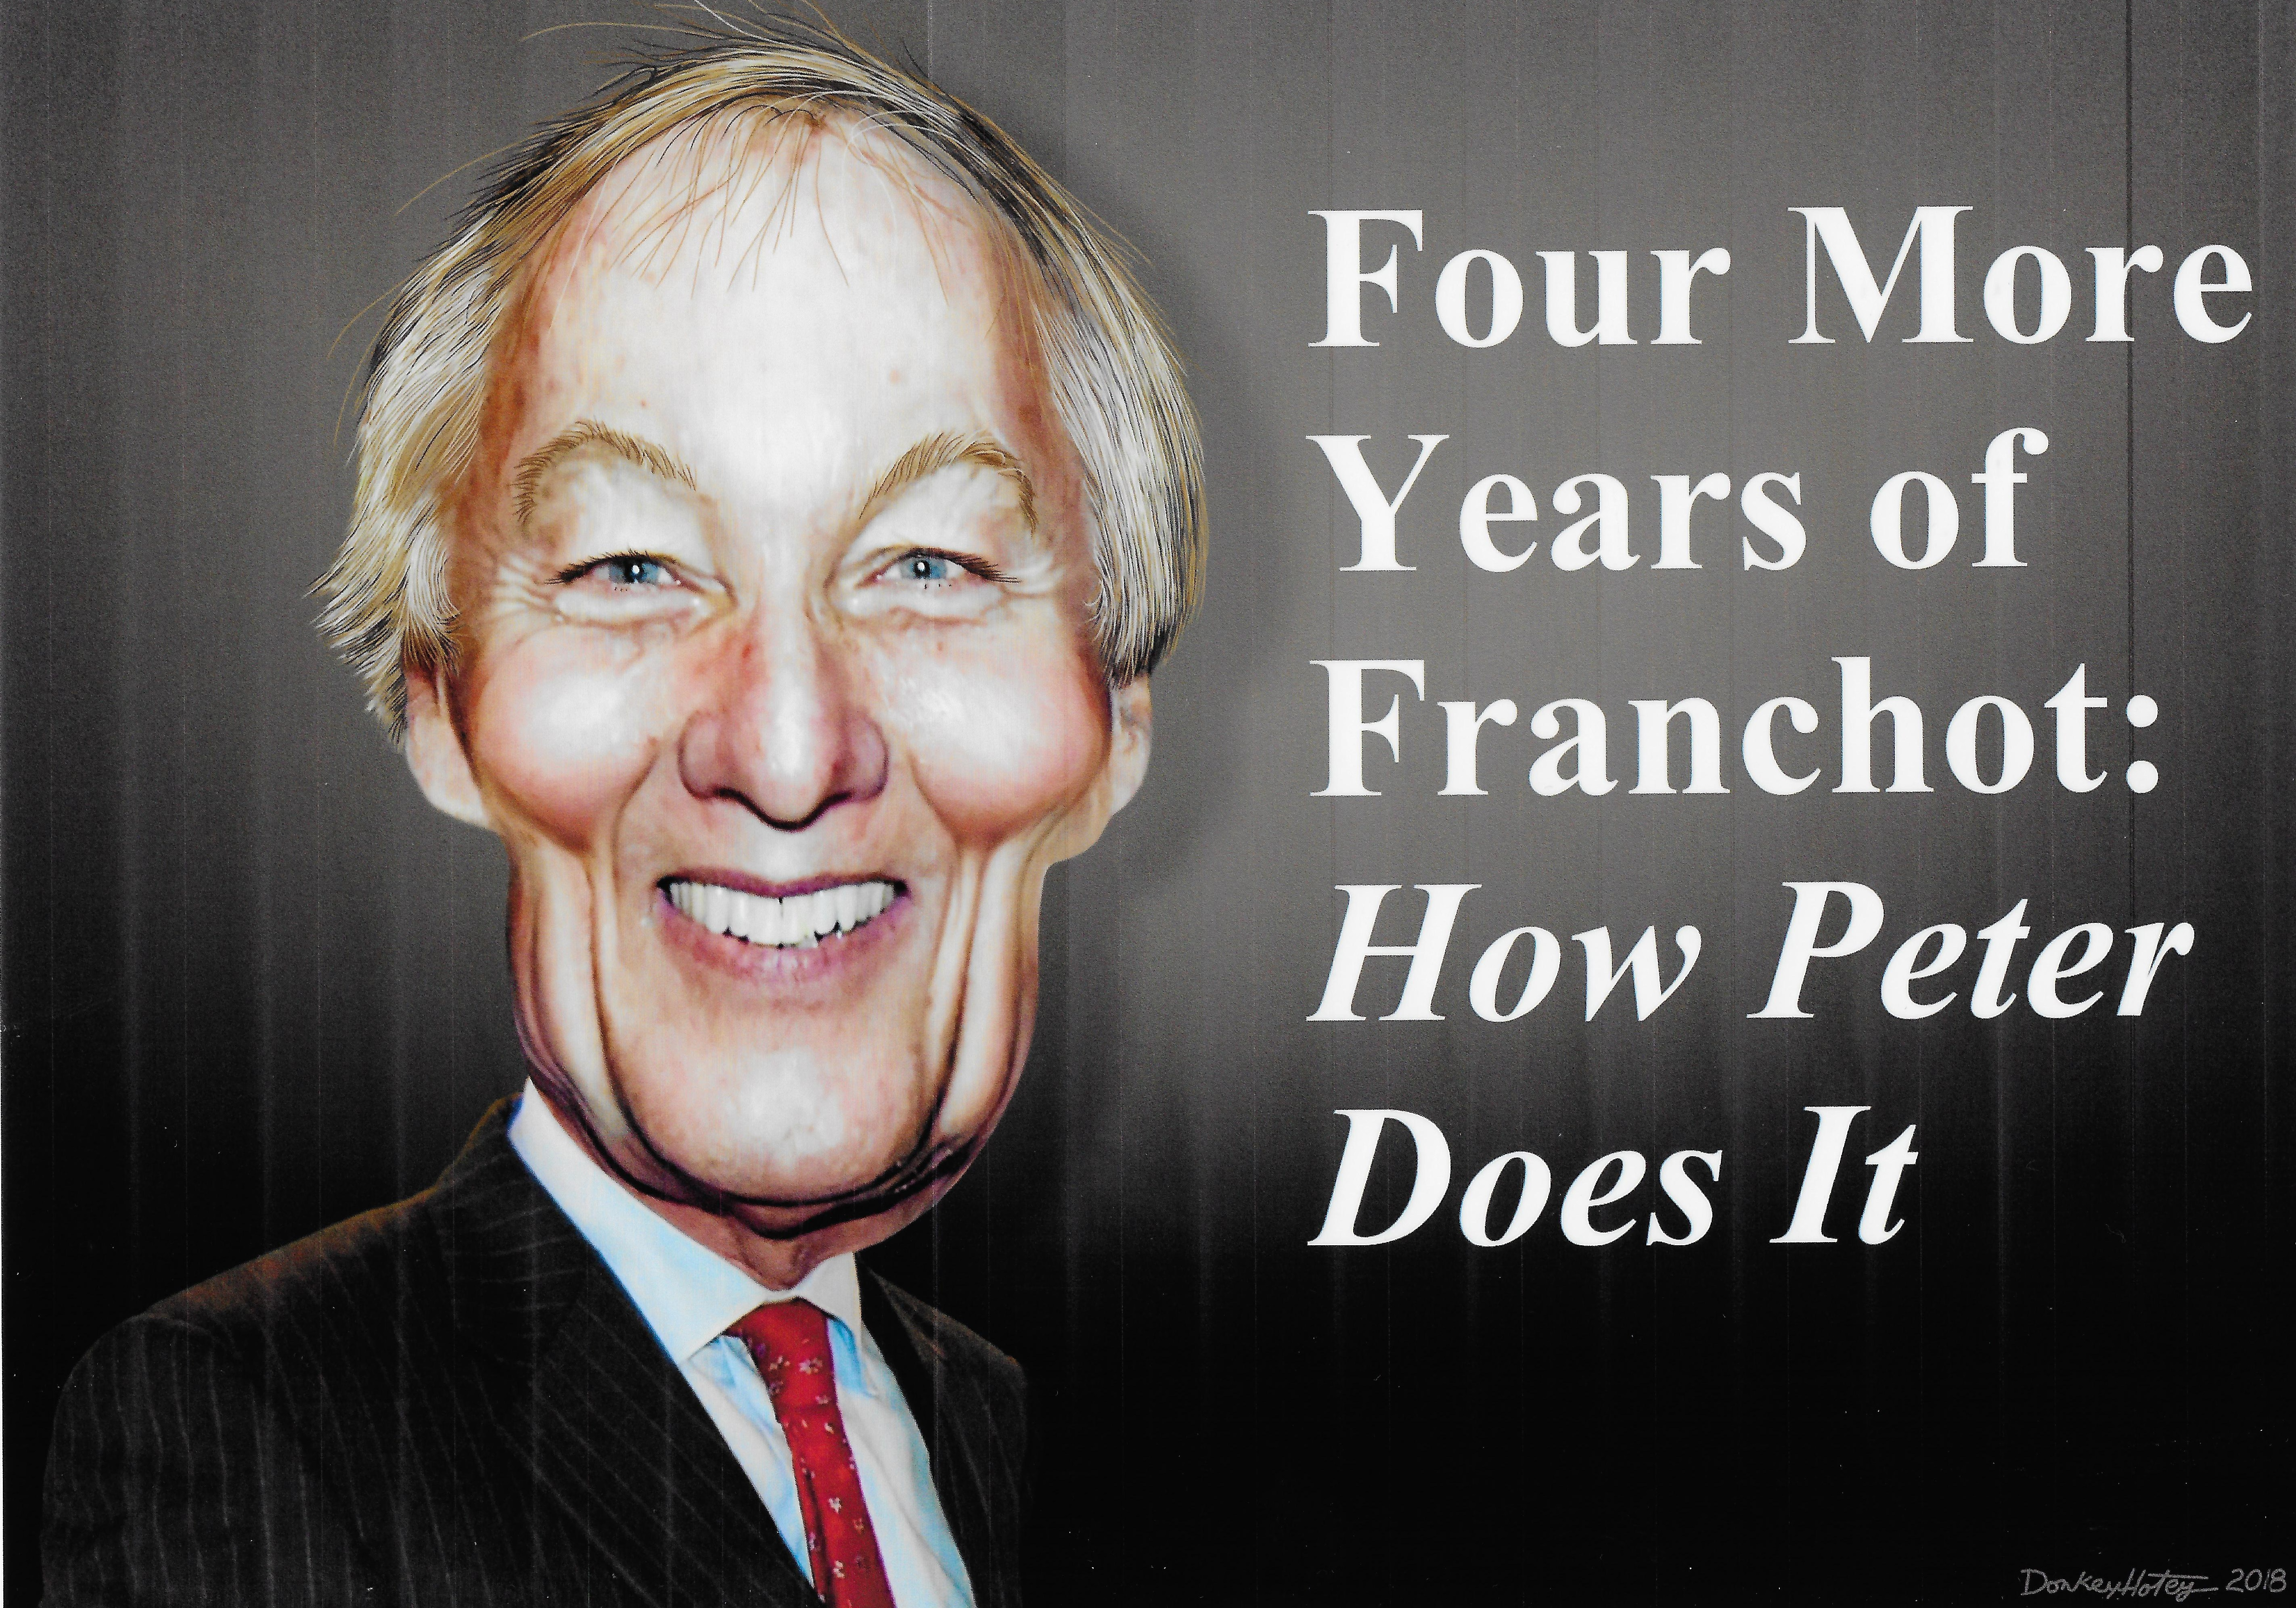 ANALYSIS: Four more years of Franchot: How he does it